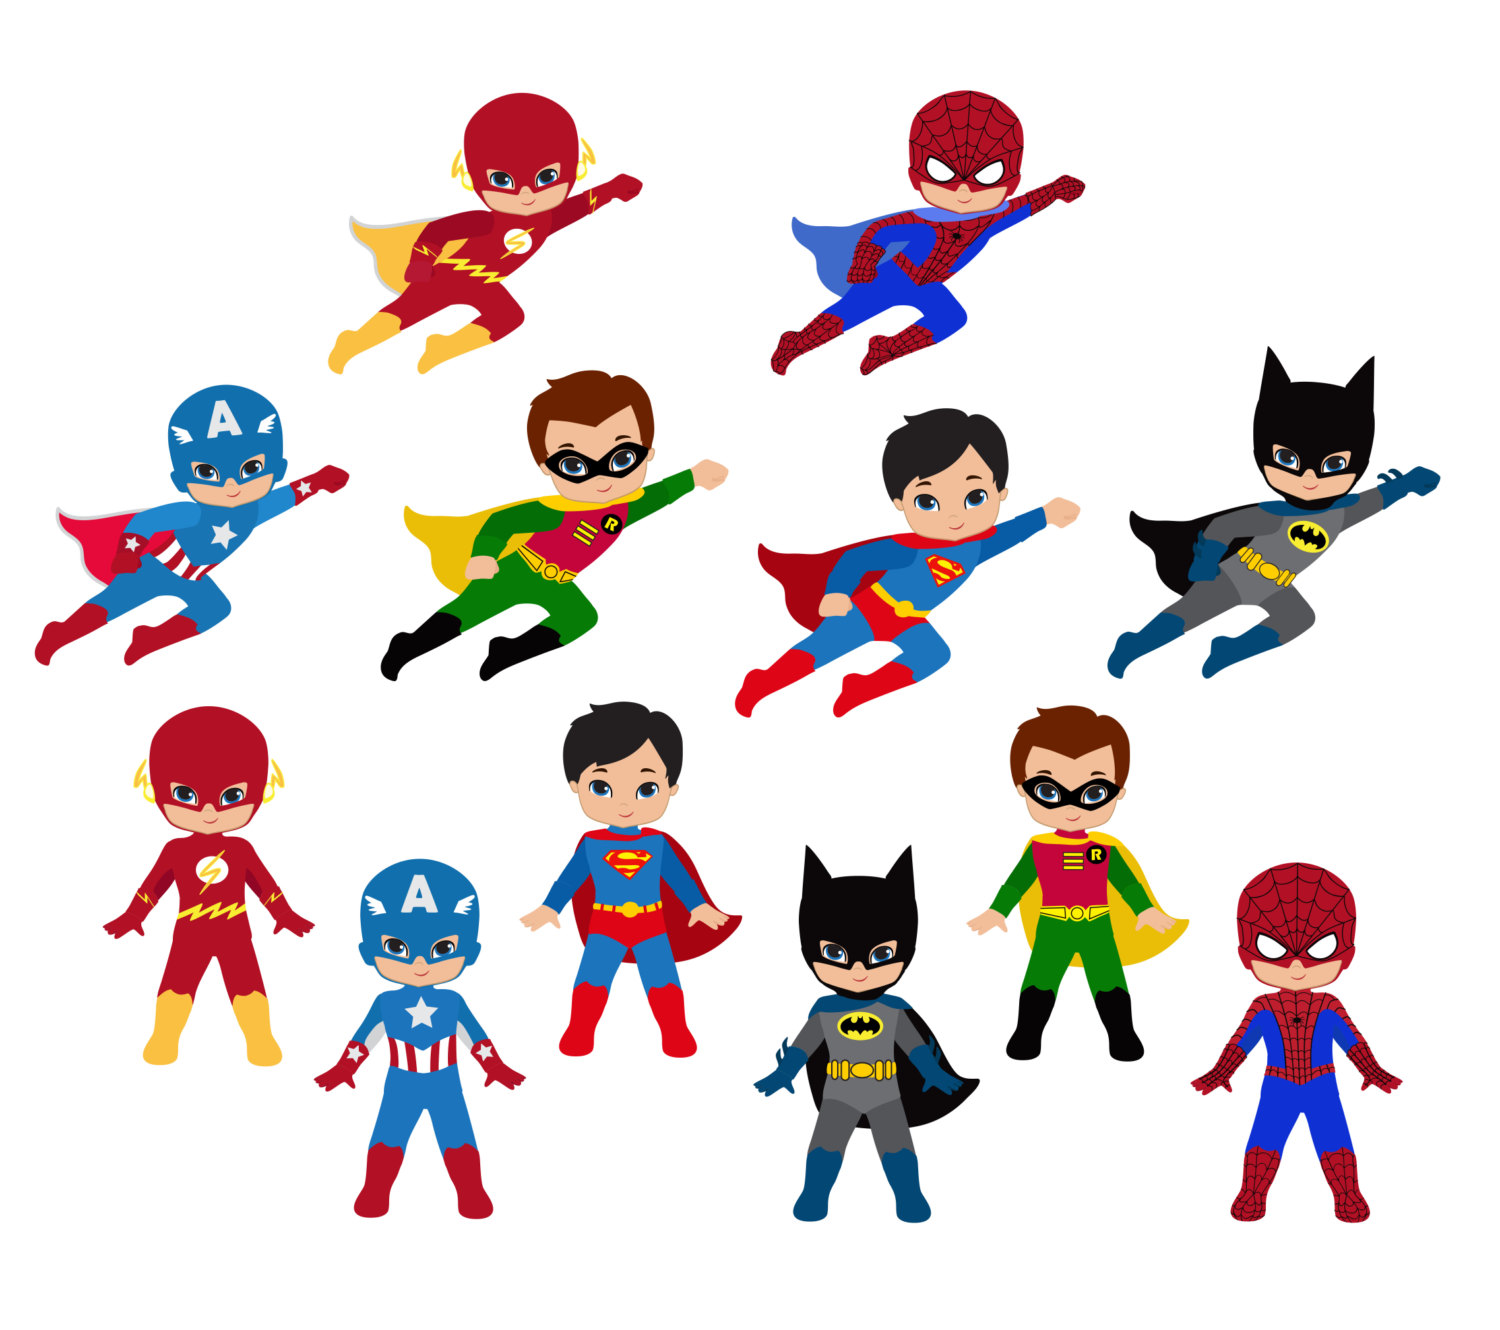 free superhero clipart | Fonts/Clipart f-free superhero clipart | Fonts/Clipart freebies | Pinterest | Teaching, Clip art and Boys-6